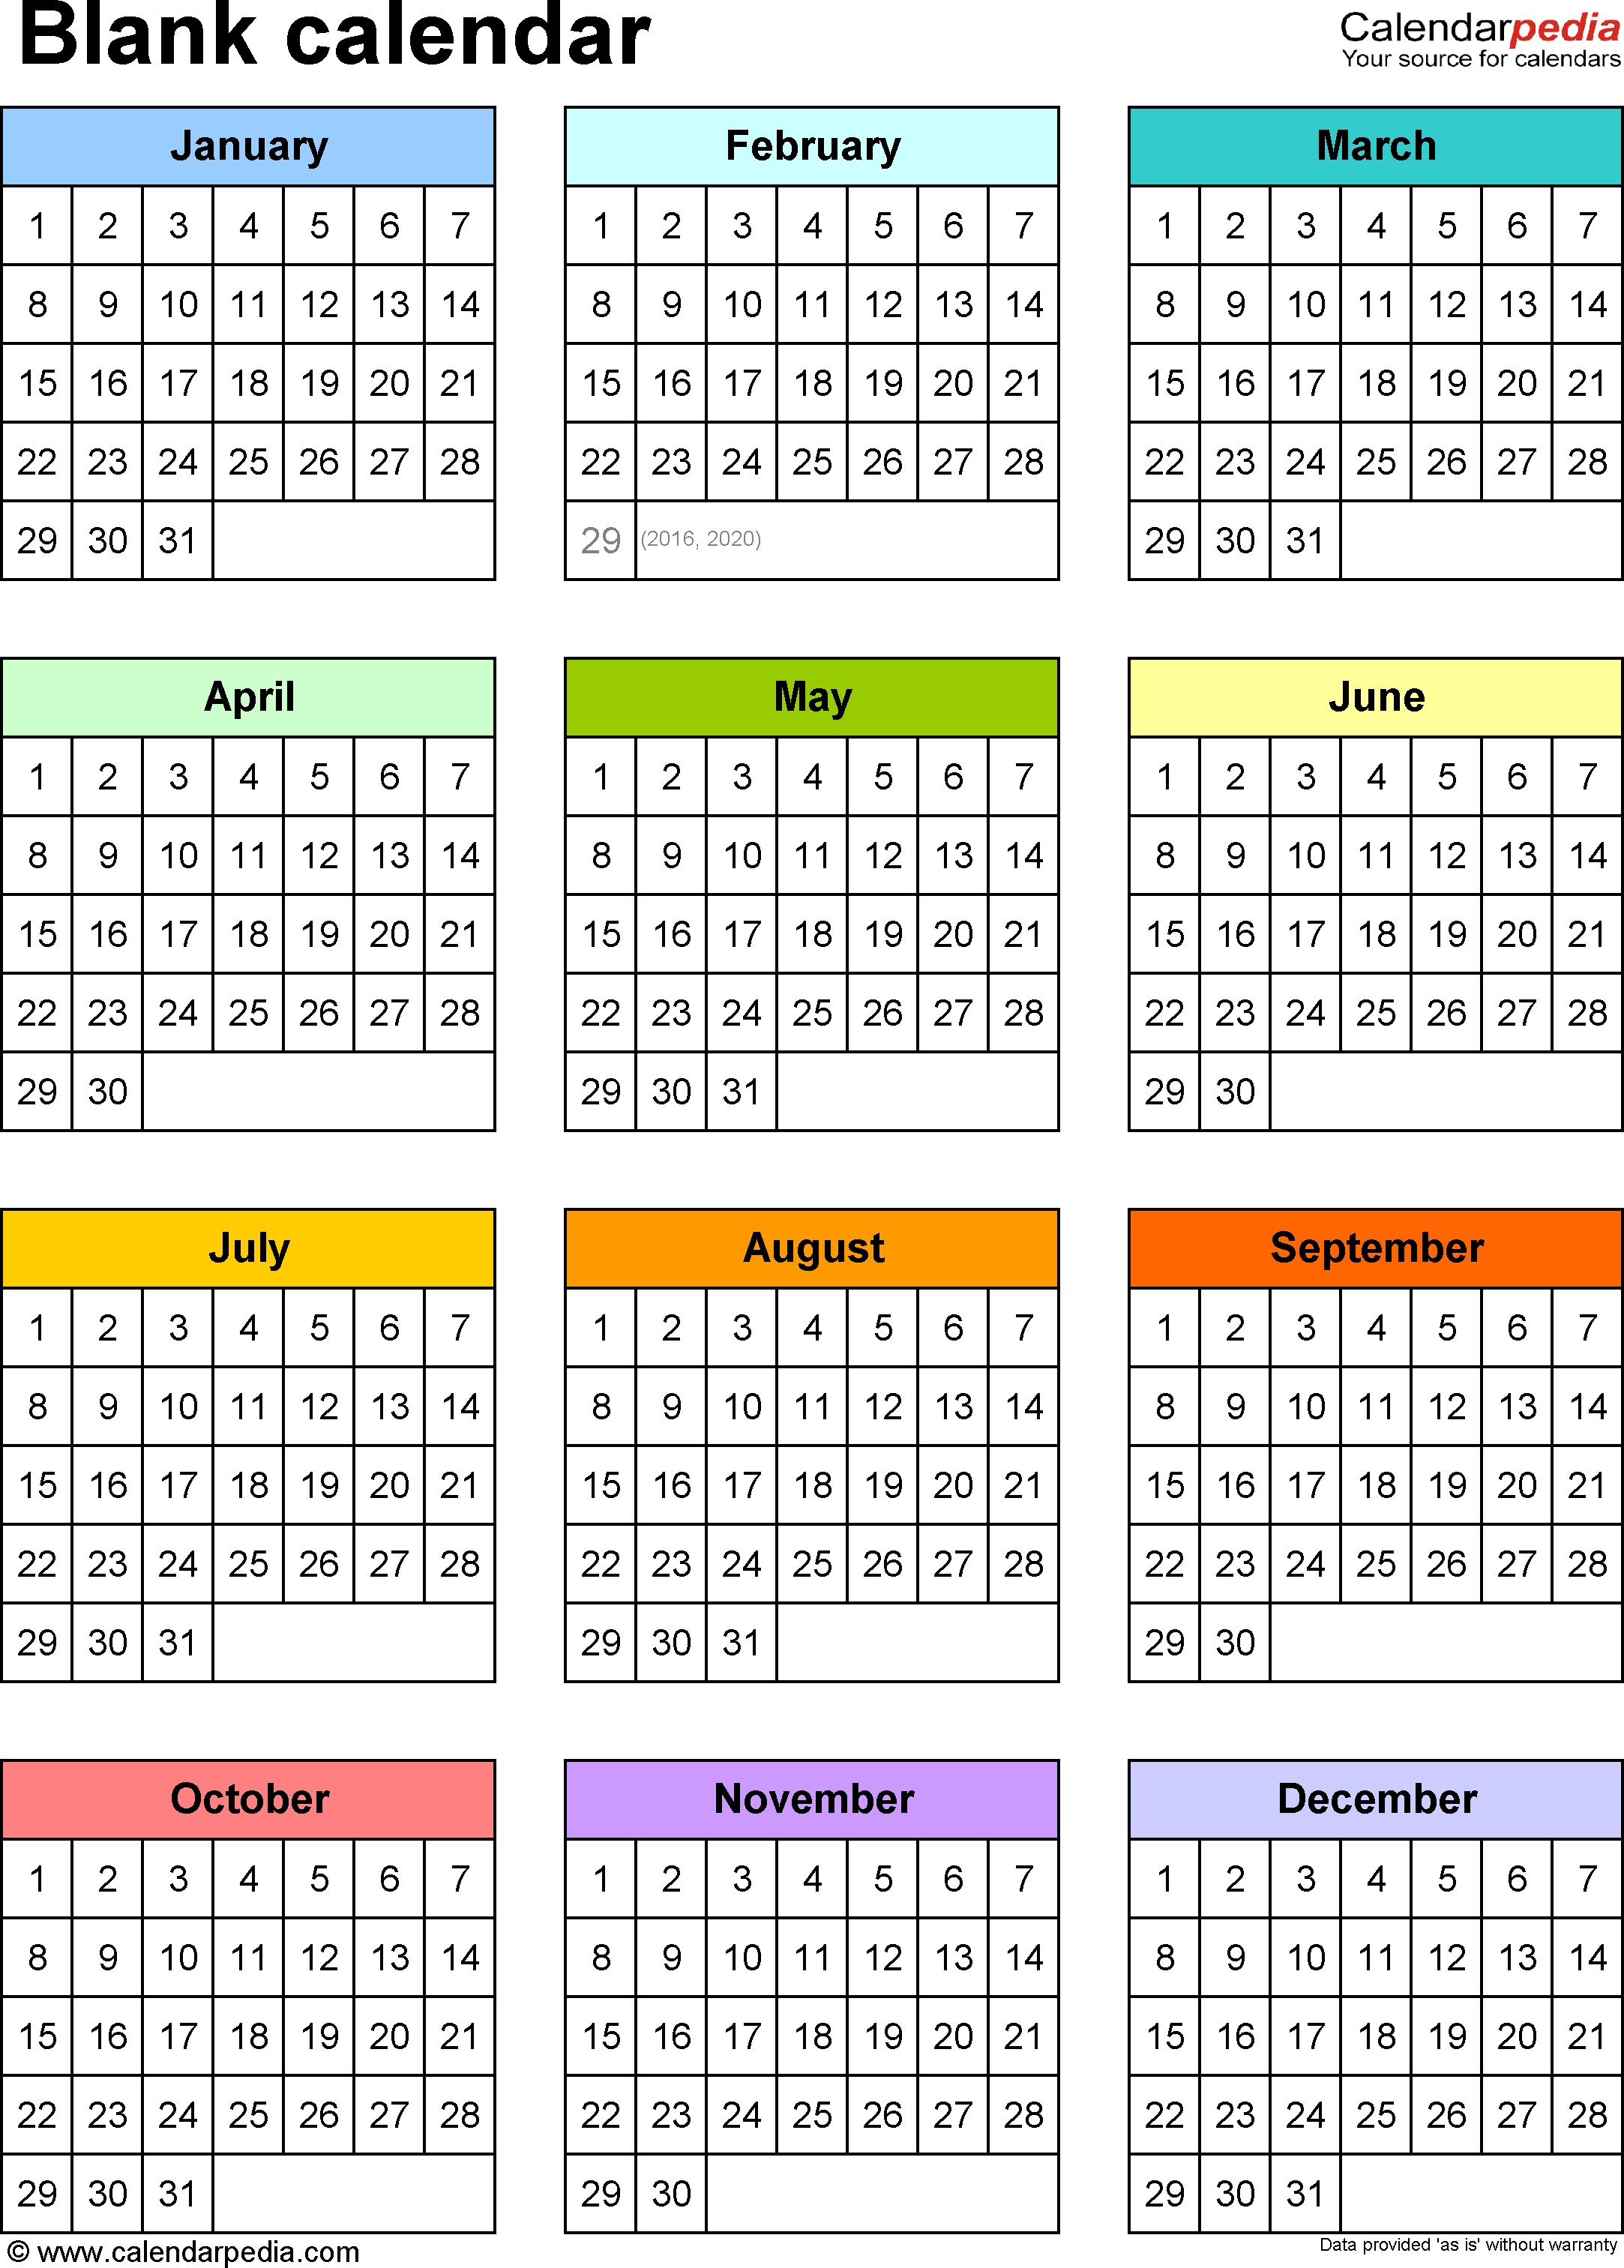 Blank Calendar - 9 Free Printable Microsoft Word Templates with regard to Template For Year At A Glance Calendar